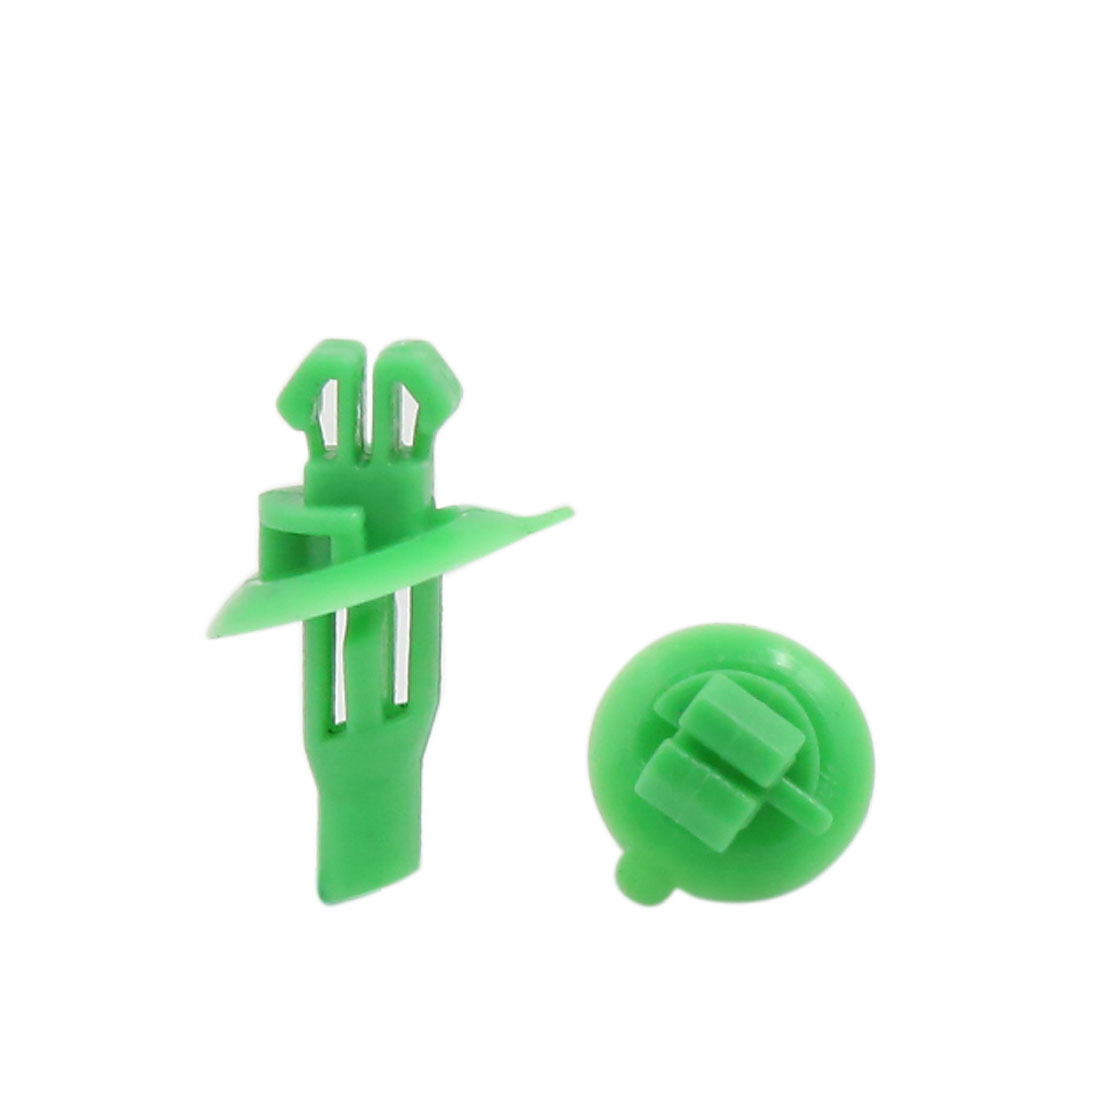 100pcs 8x10mm Hole Size Plastic Rivet Wheel Arch Cover Fastener Green for Toyota